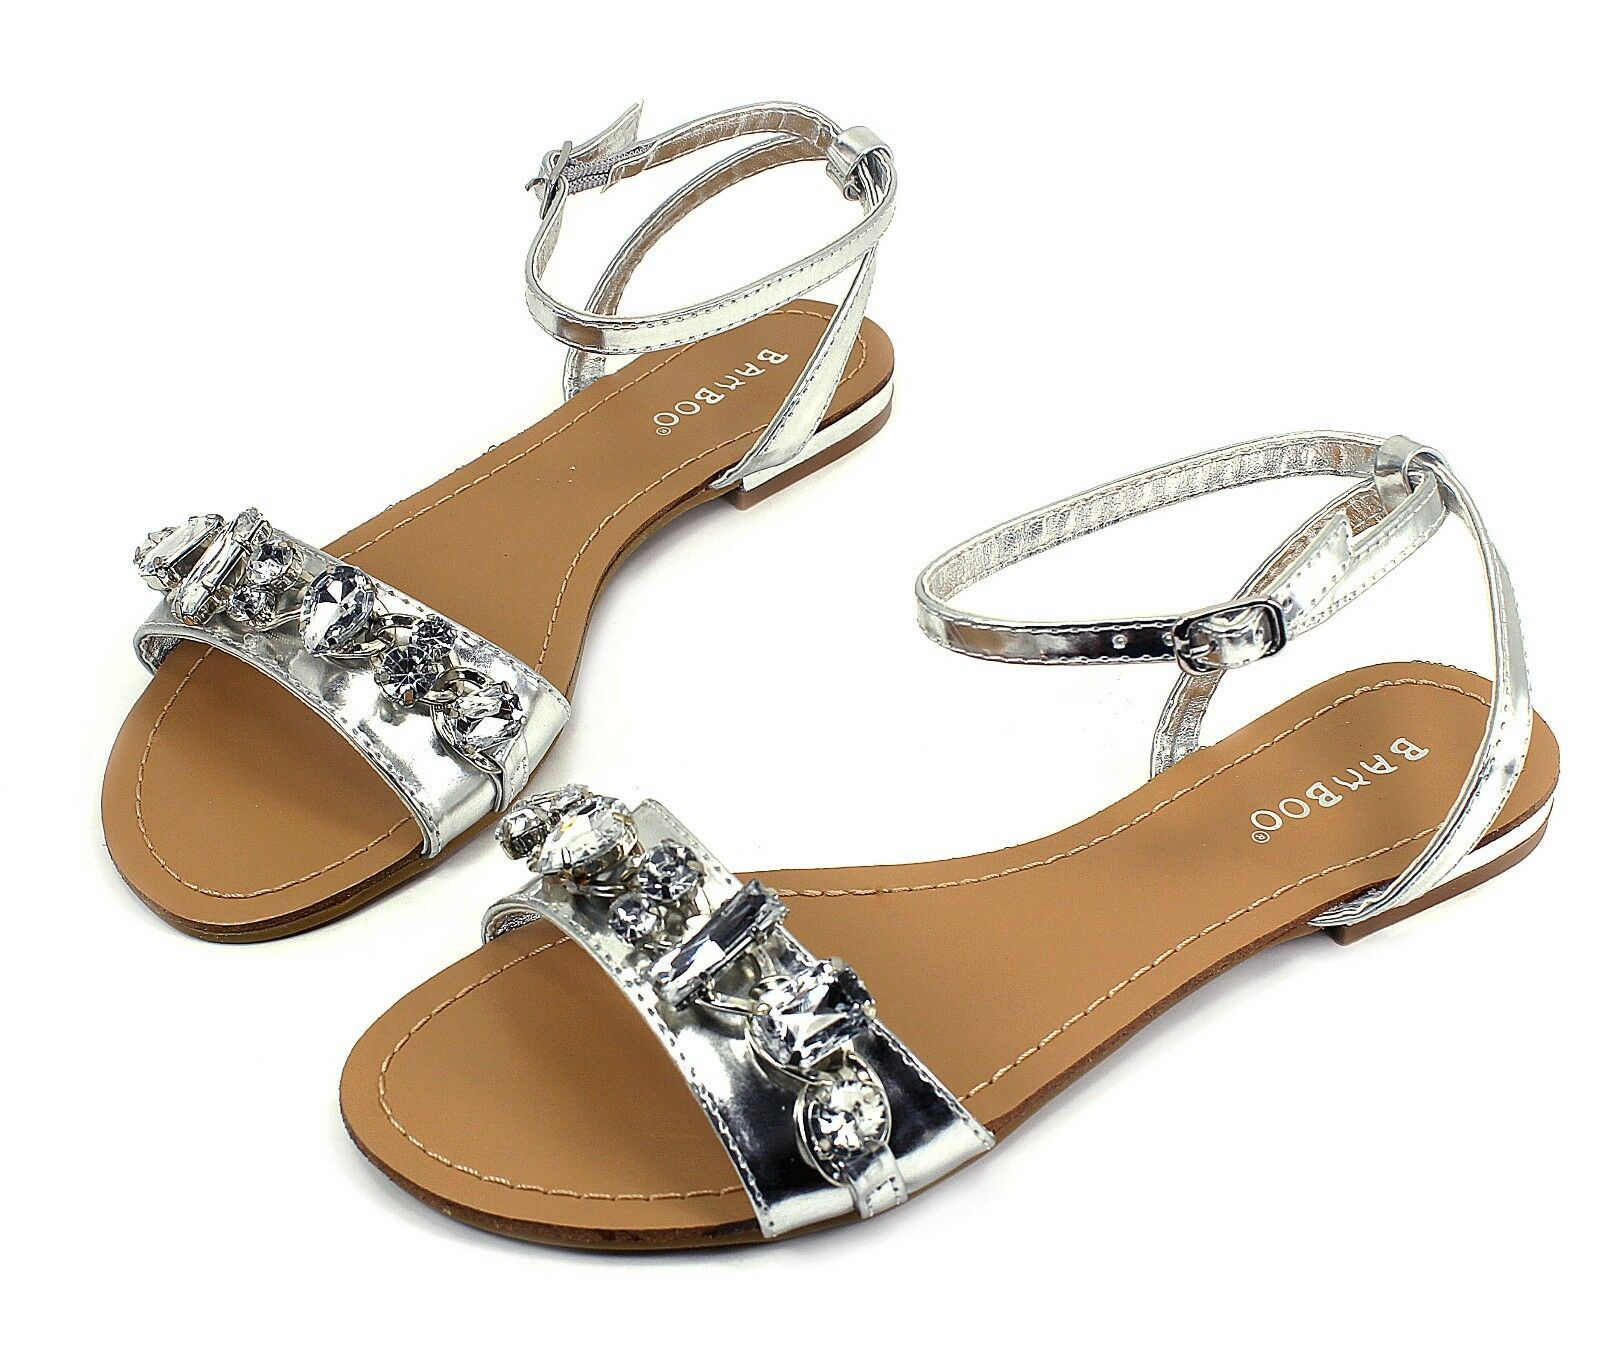 Ambra-69 Fashion Precious Stone Women Flat Cute Sandals Party Women Stone Shoes Silver 8.5 aac128